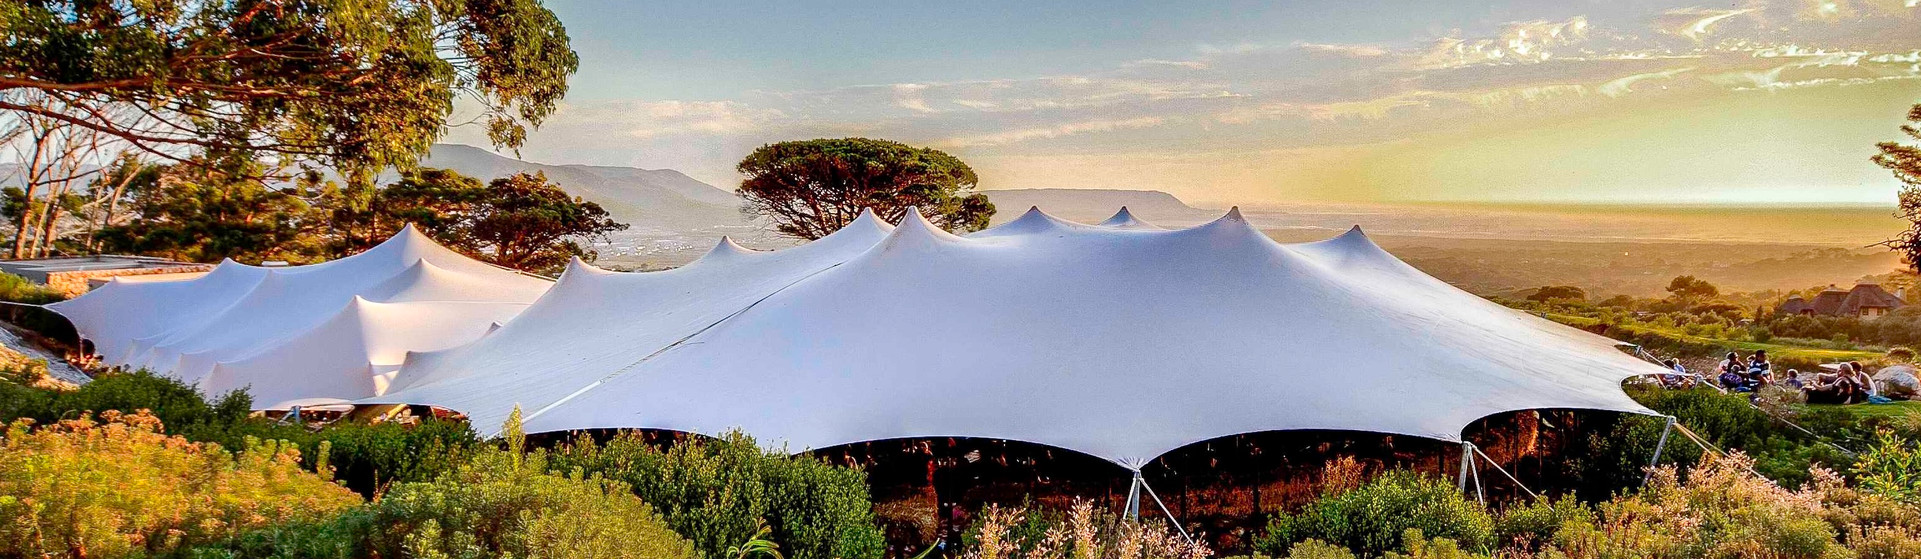 stetch tents